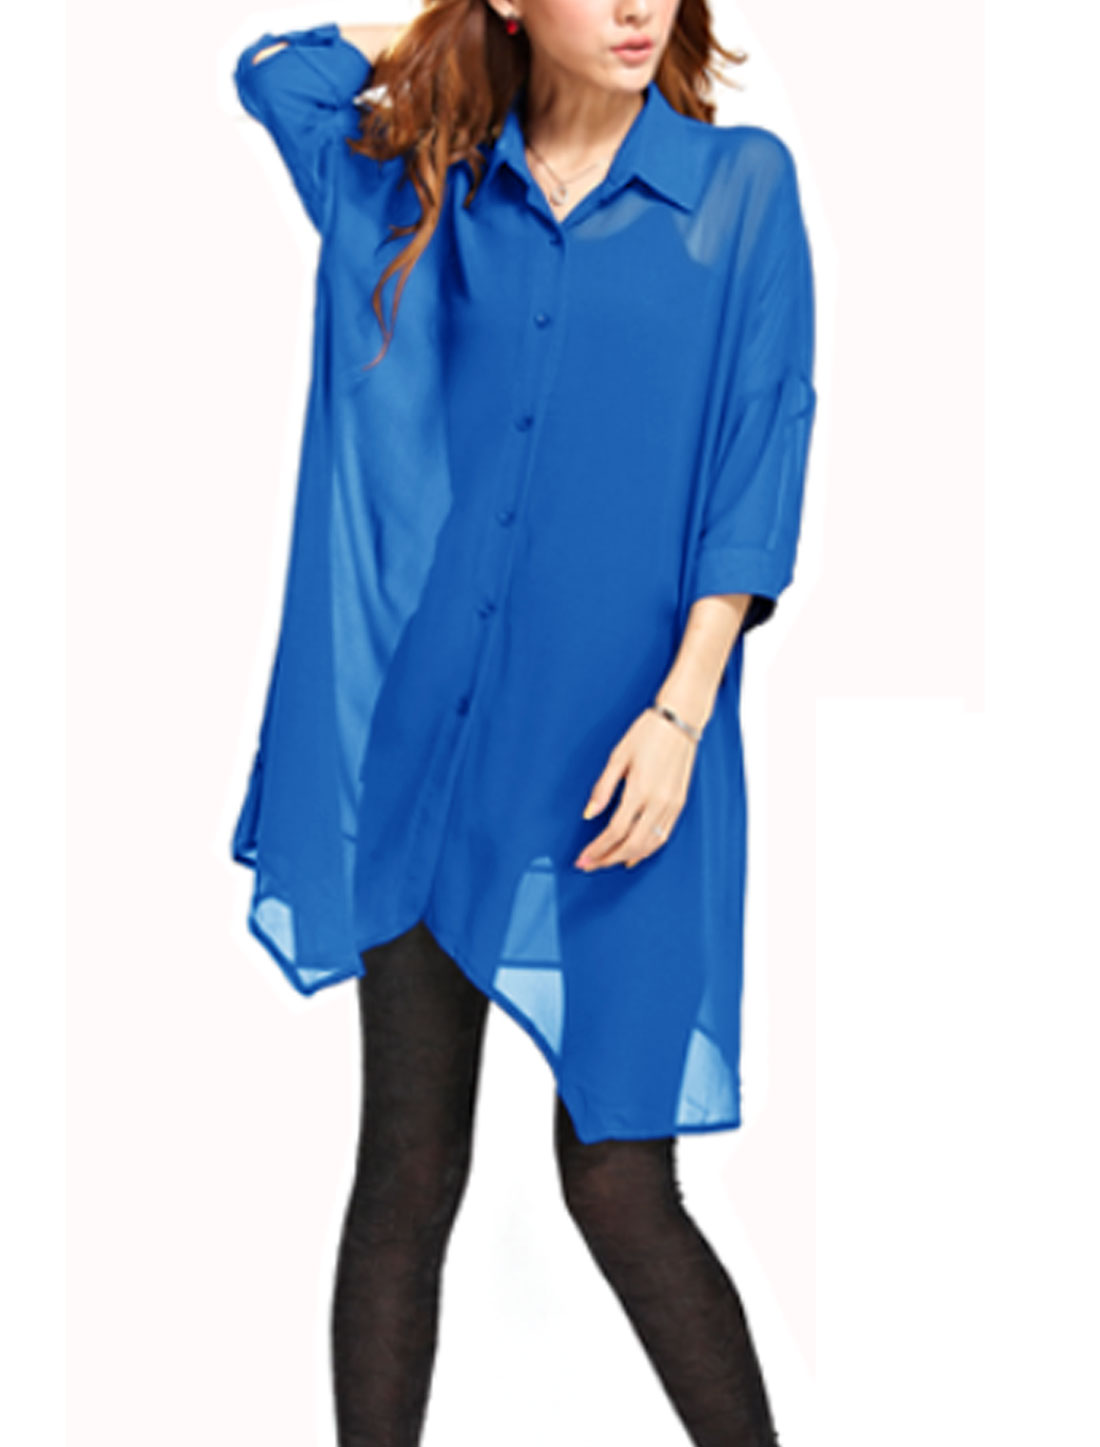 Cozy Fit Leisure Single Breasted Tunic Chiffon Shirt for Lady Royal Blue S